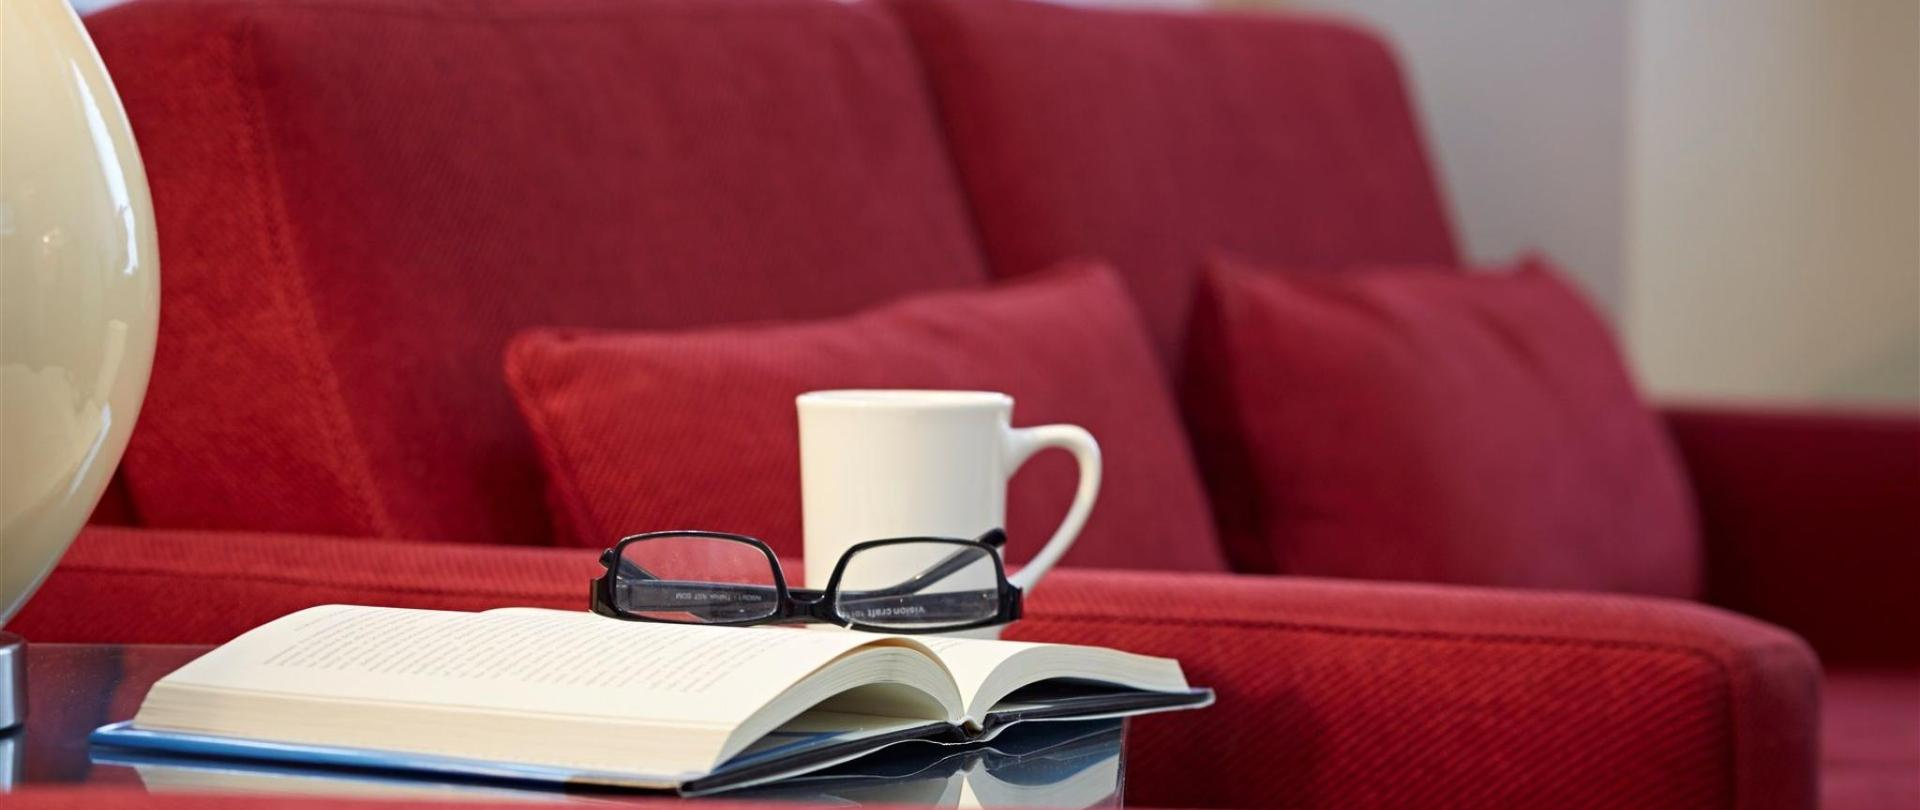 red-loveseat-and-book.jpg